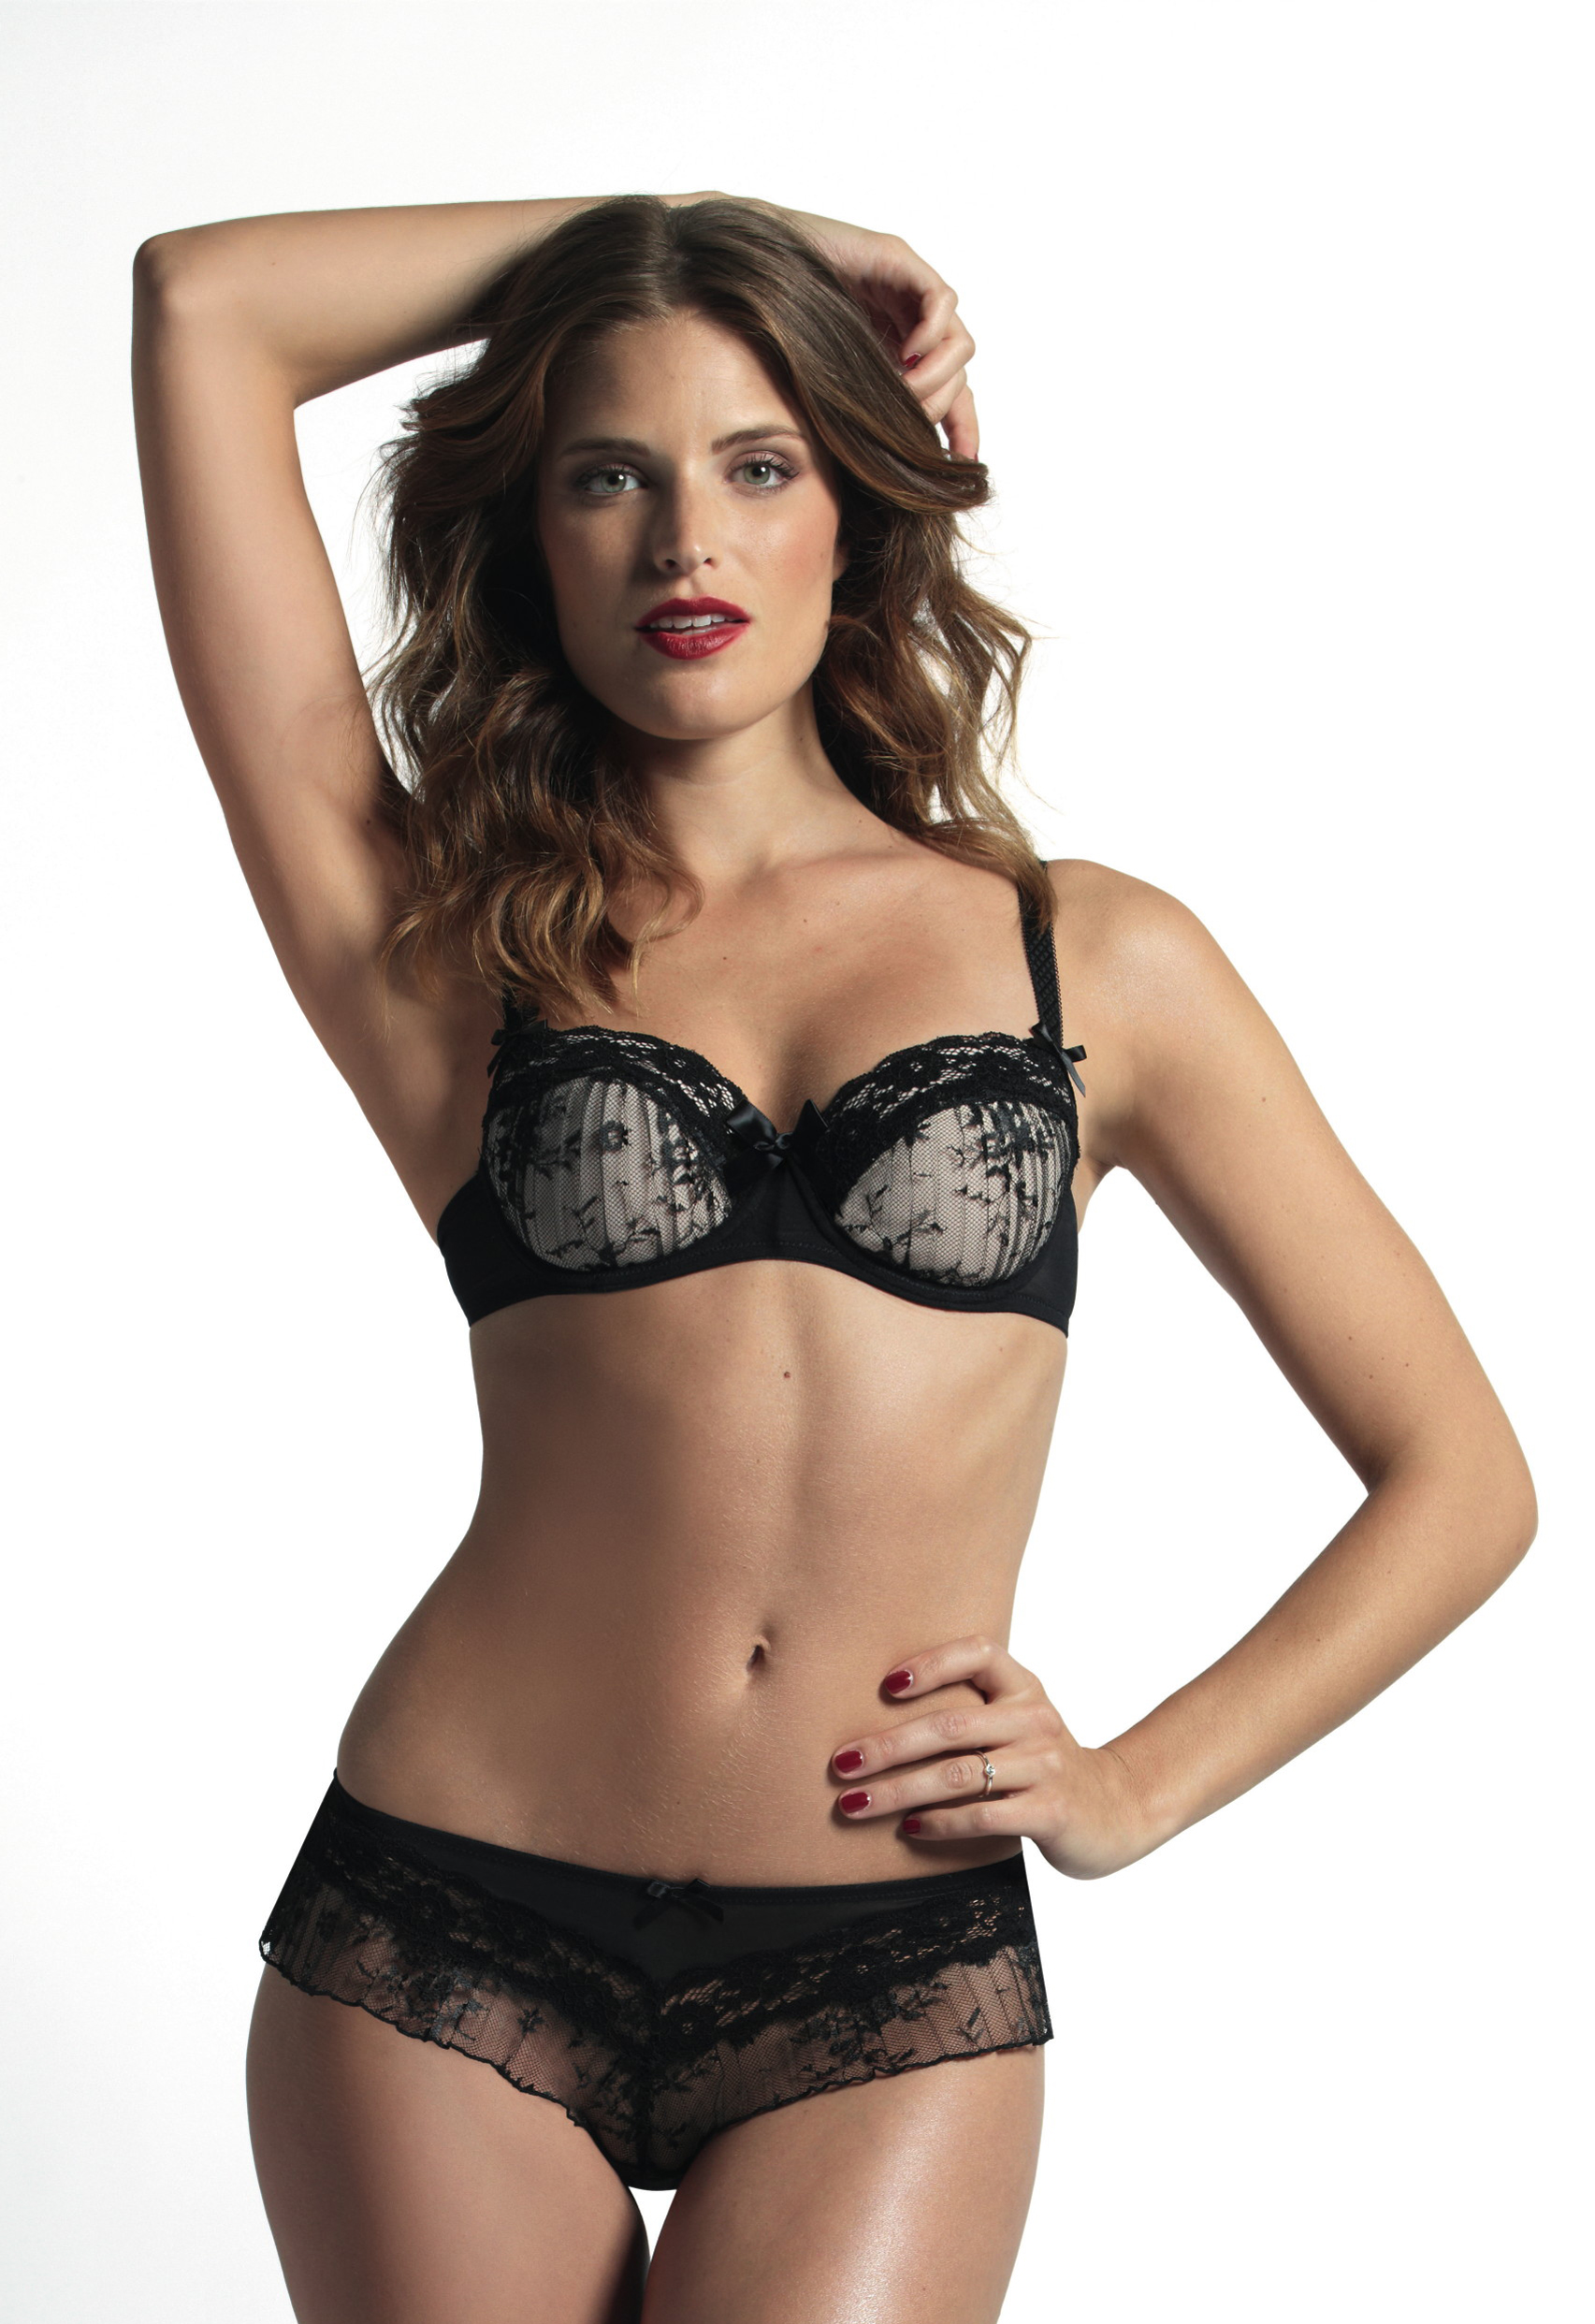 k Followers, Following, 1, Posts - See Instagram photos and videos from RougeGorge Lingerie (@rougegorgelingerie).